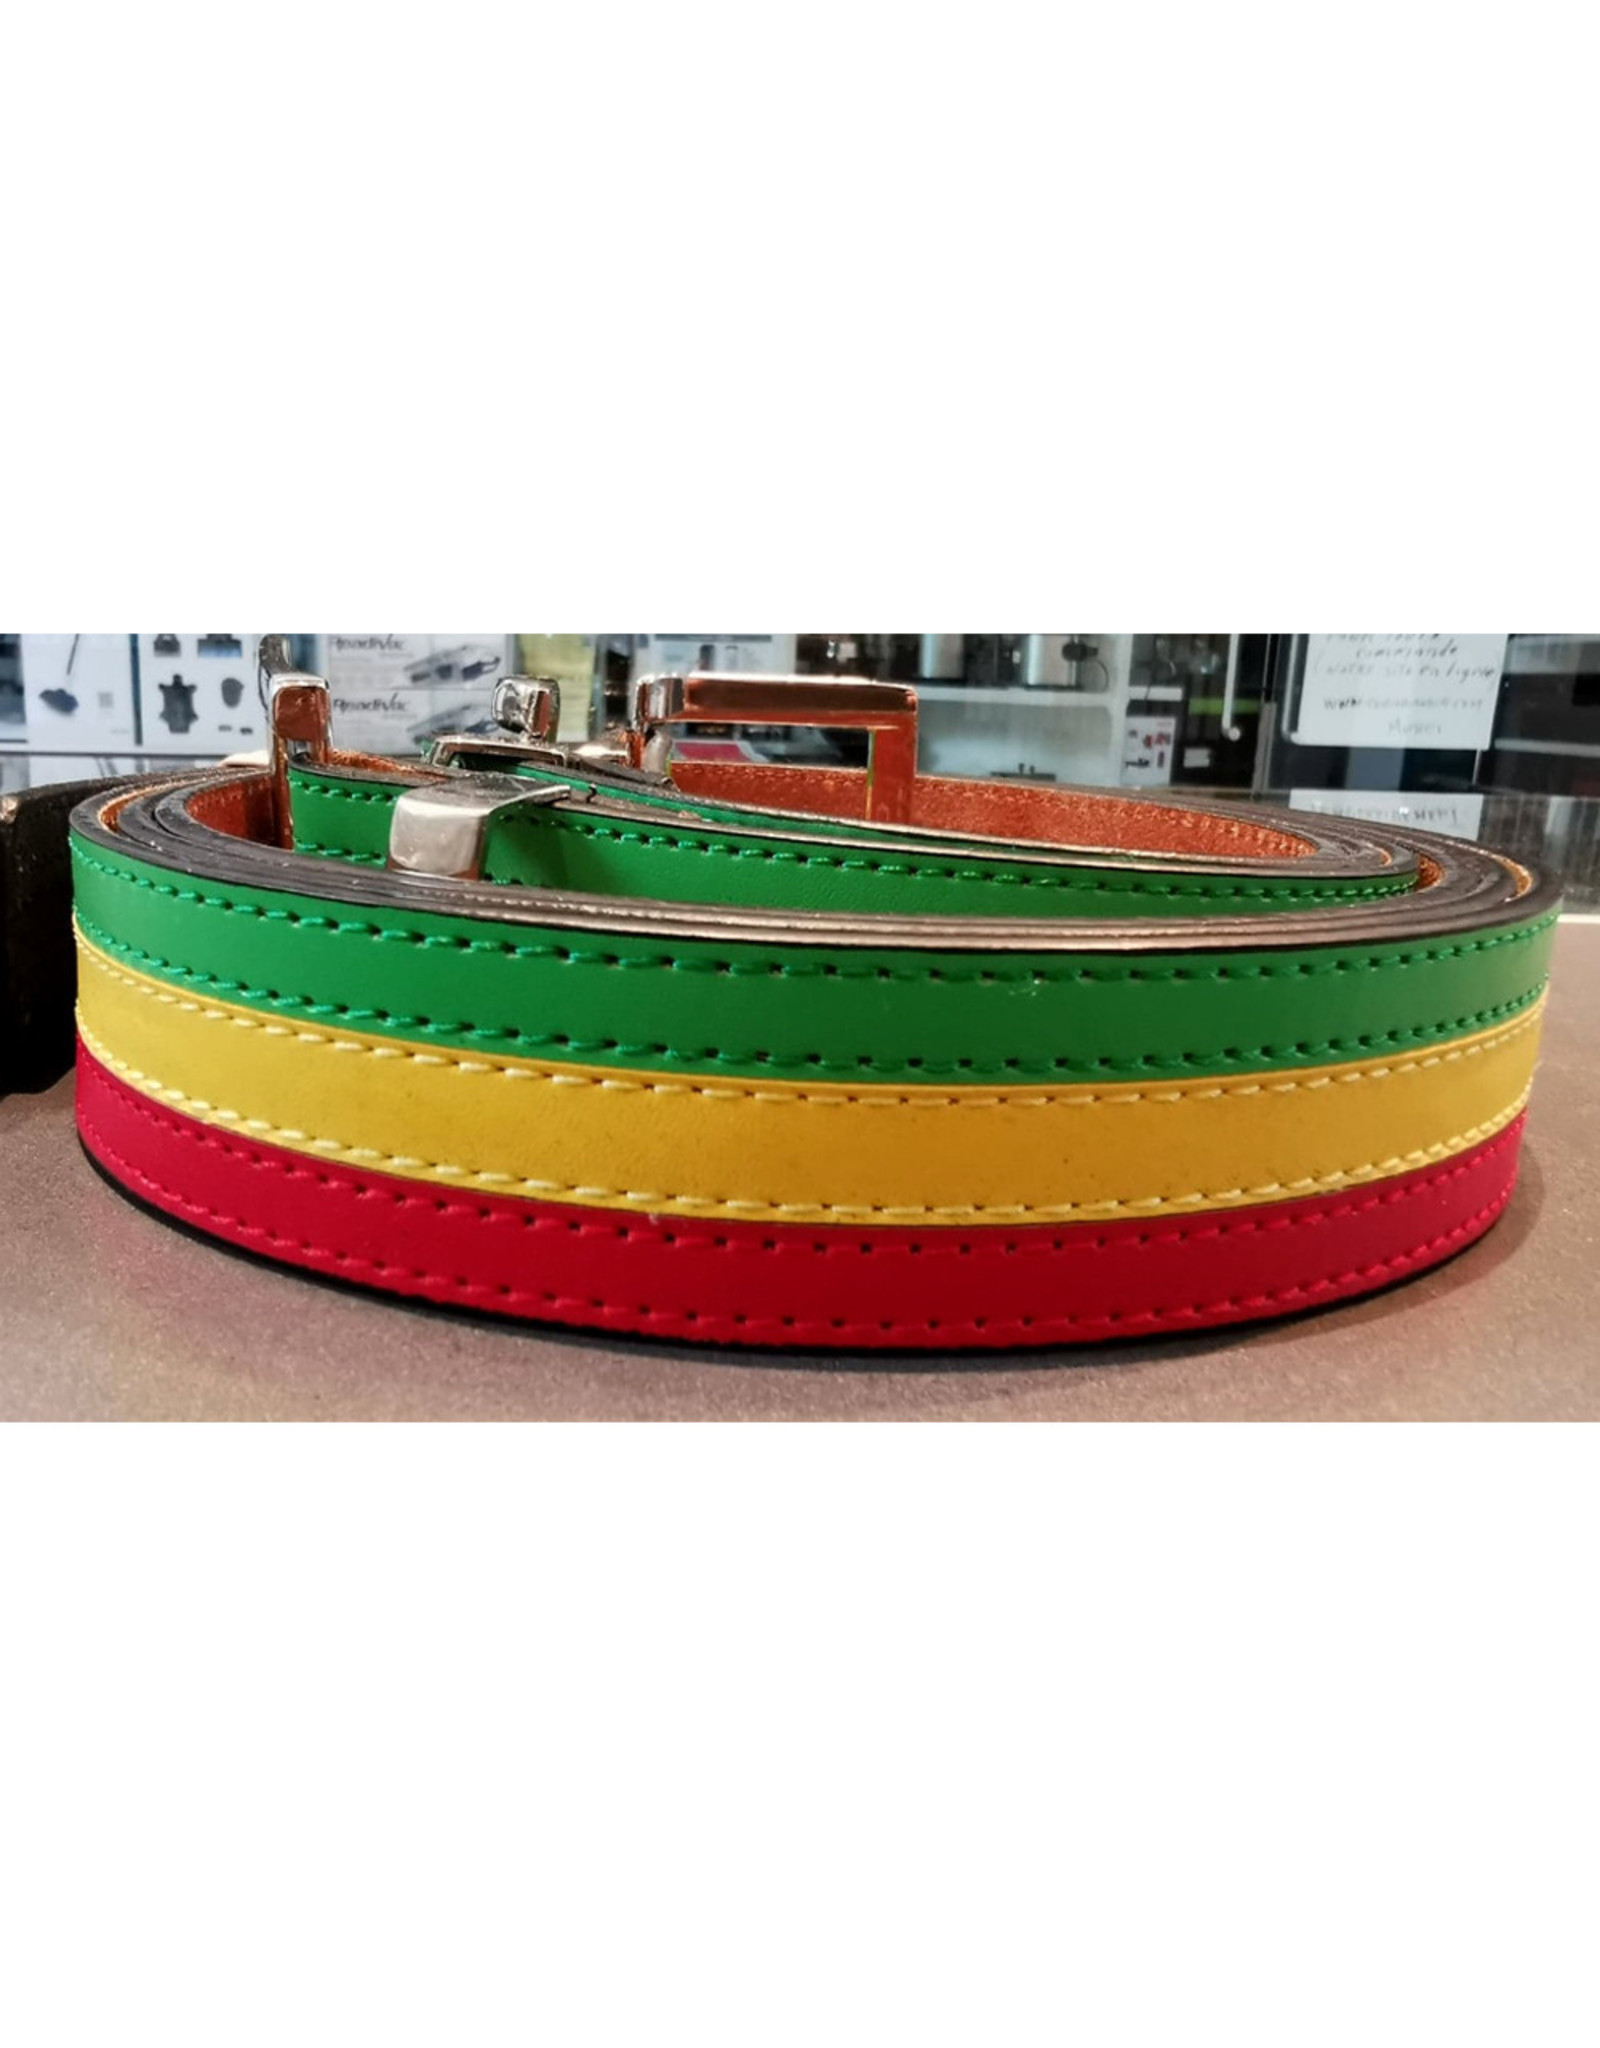 Ceinture Green, Yellow, Red Stripes (5053)